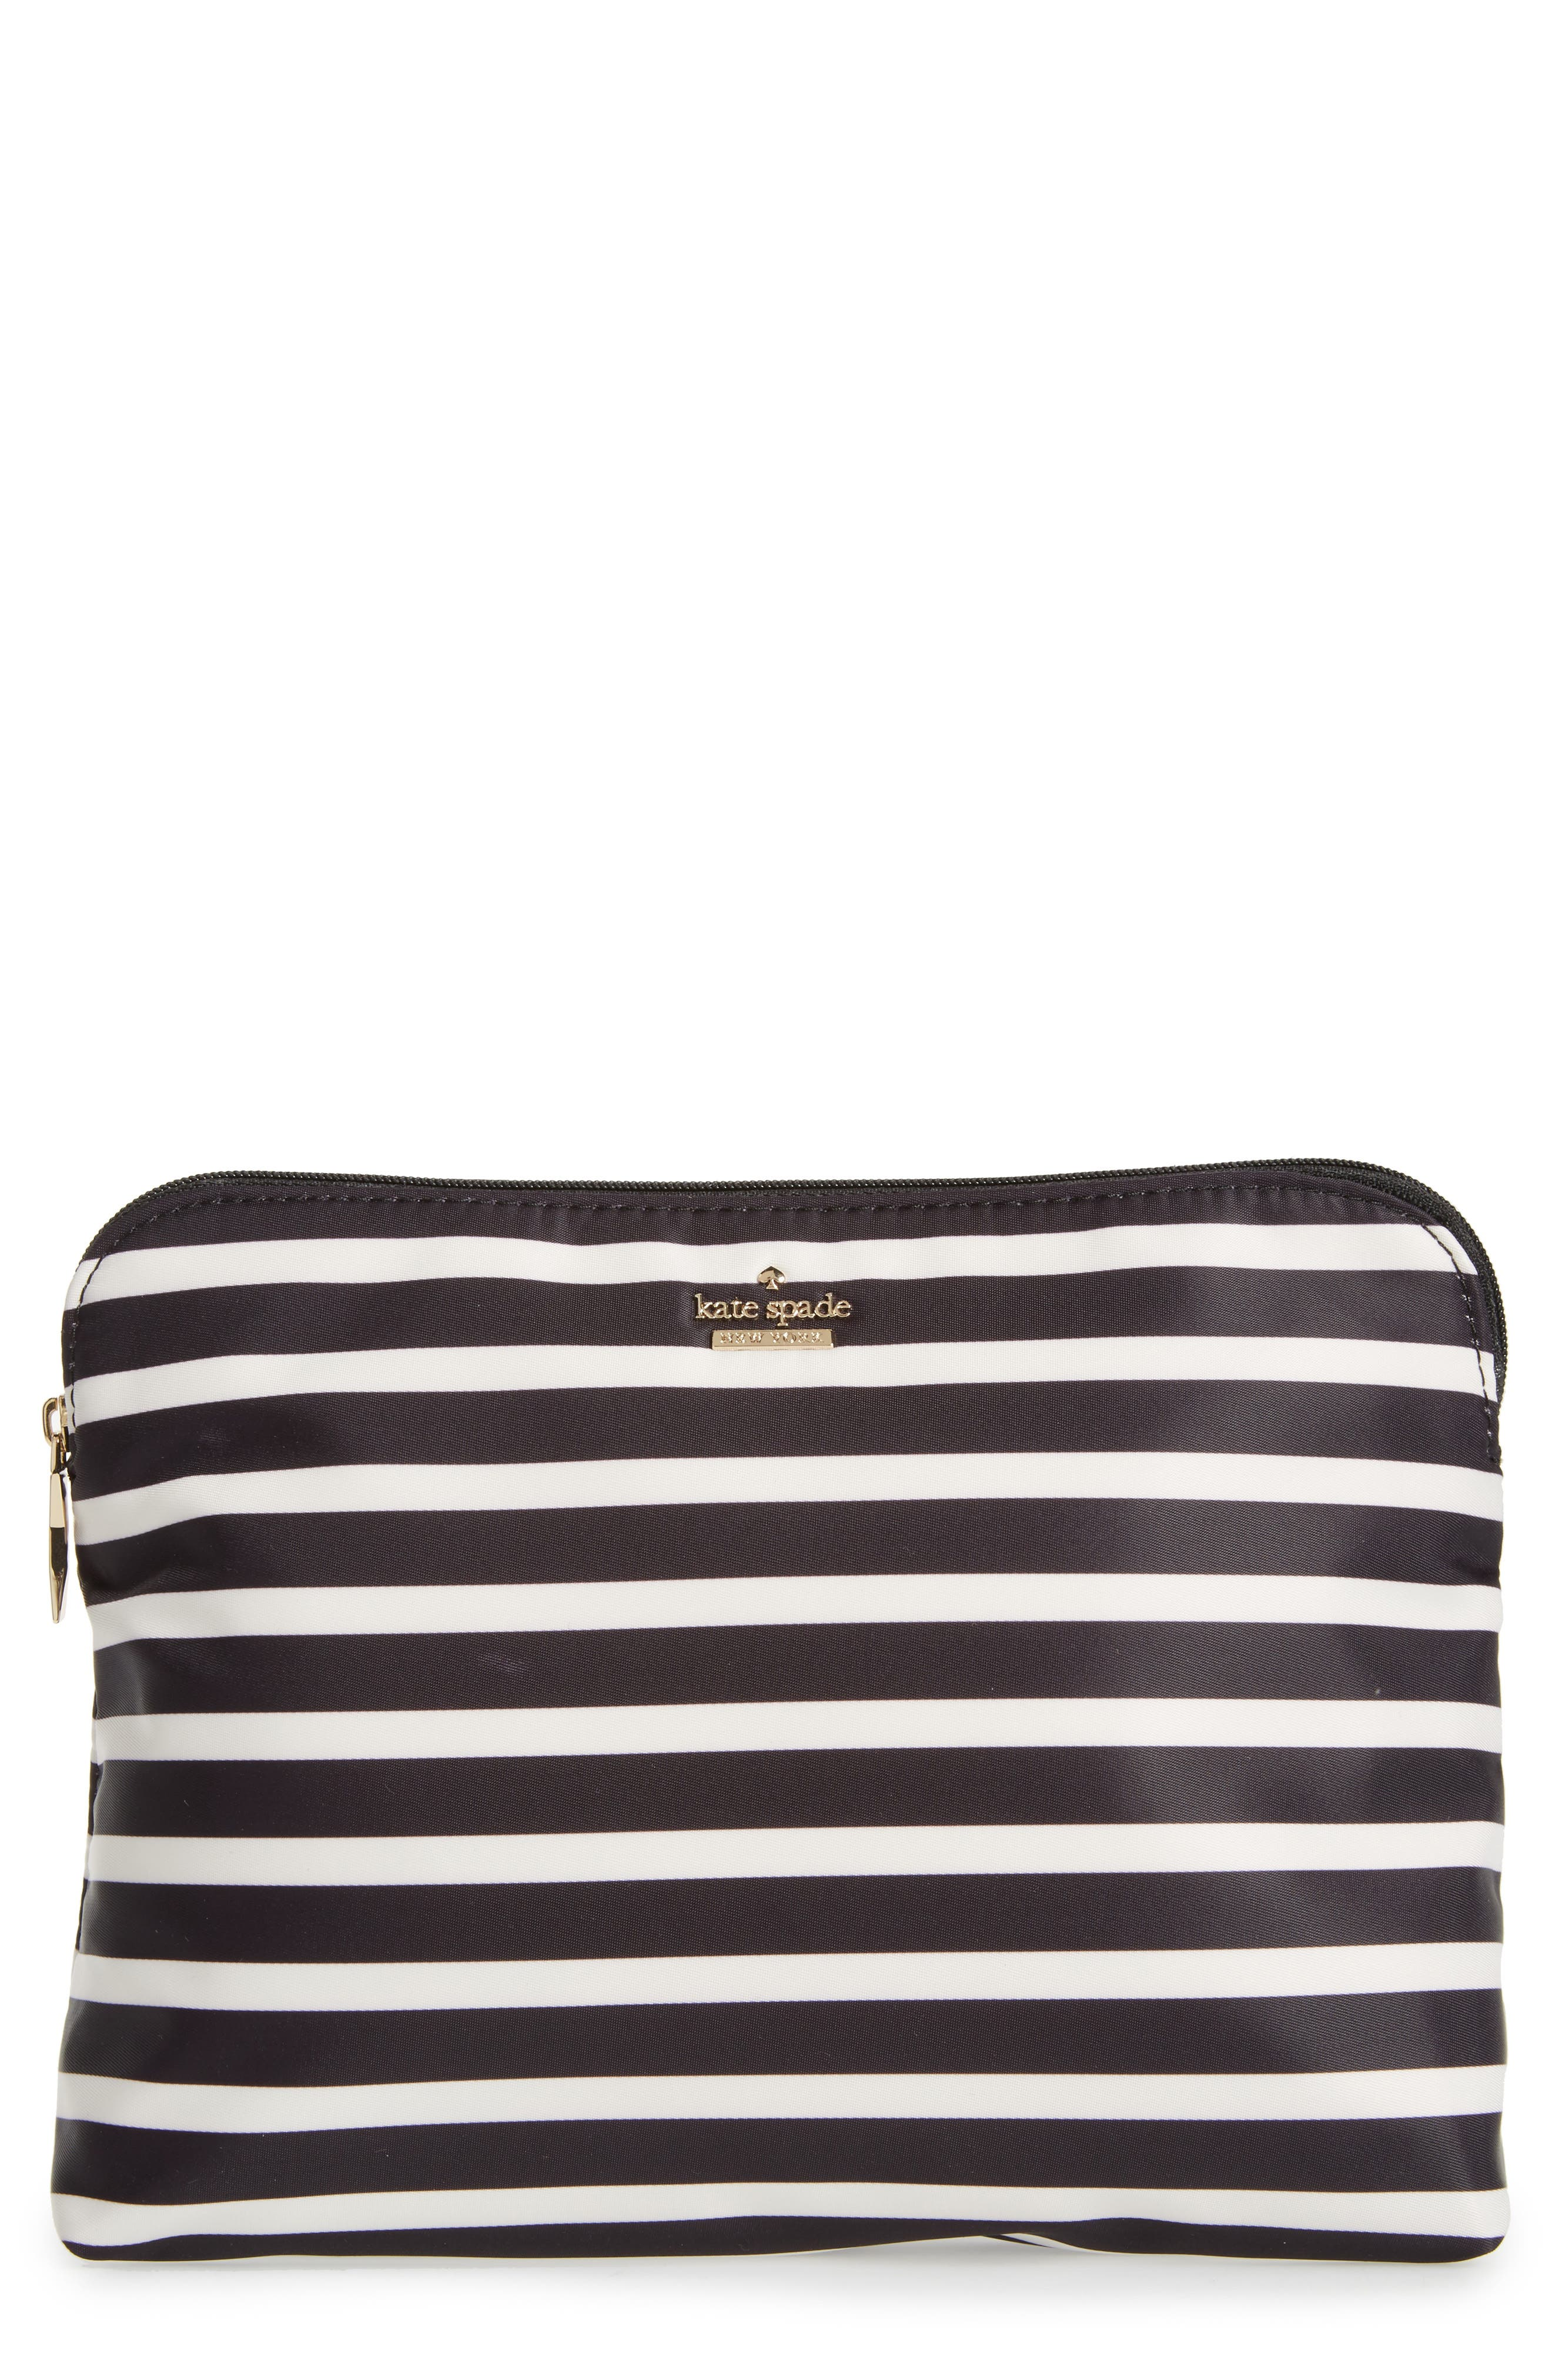 kate spade new york classic briley nylon pouch